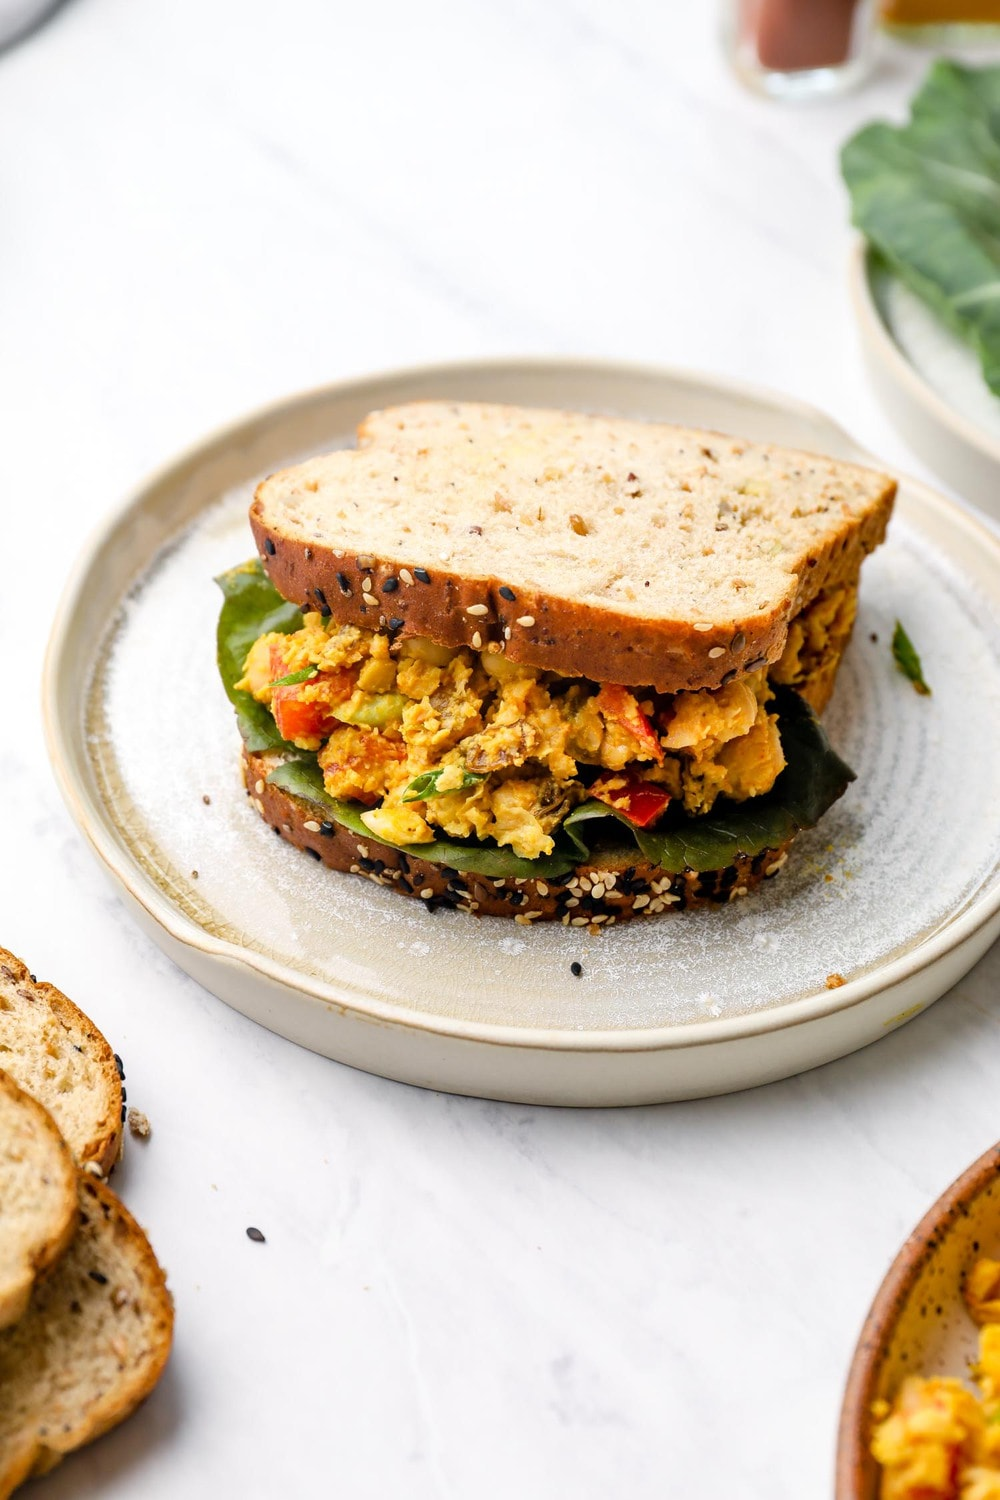 A Curry Chickpea Salad sandwich.